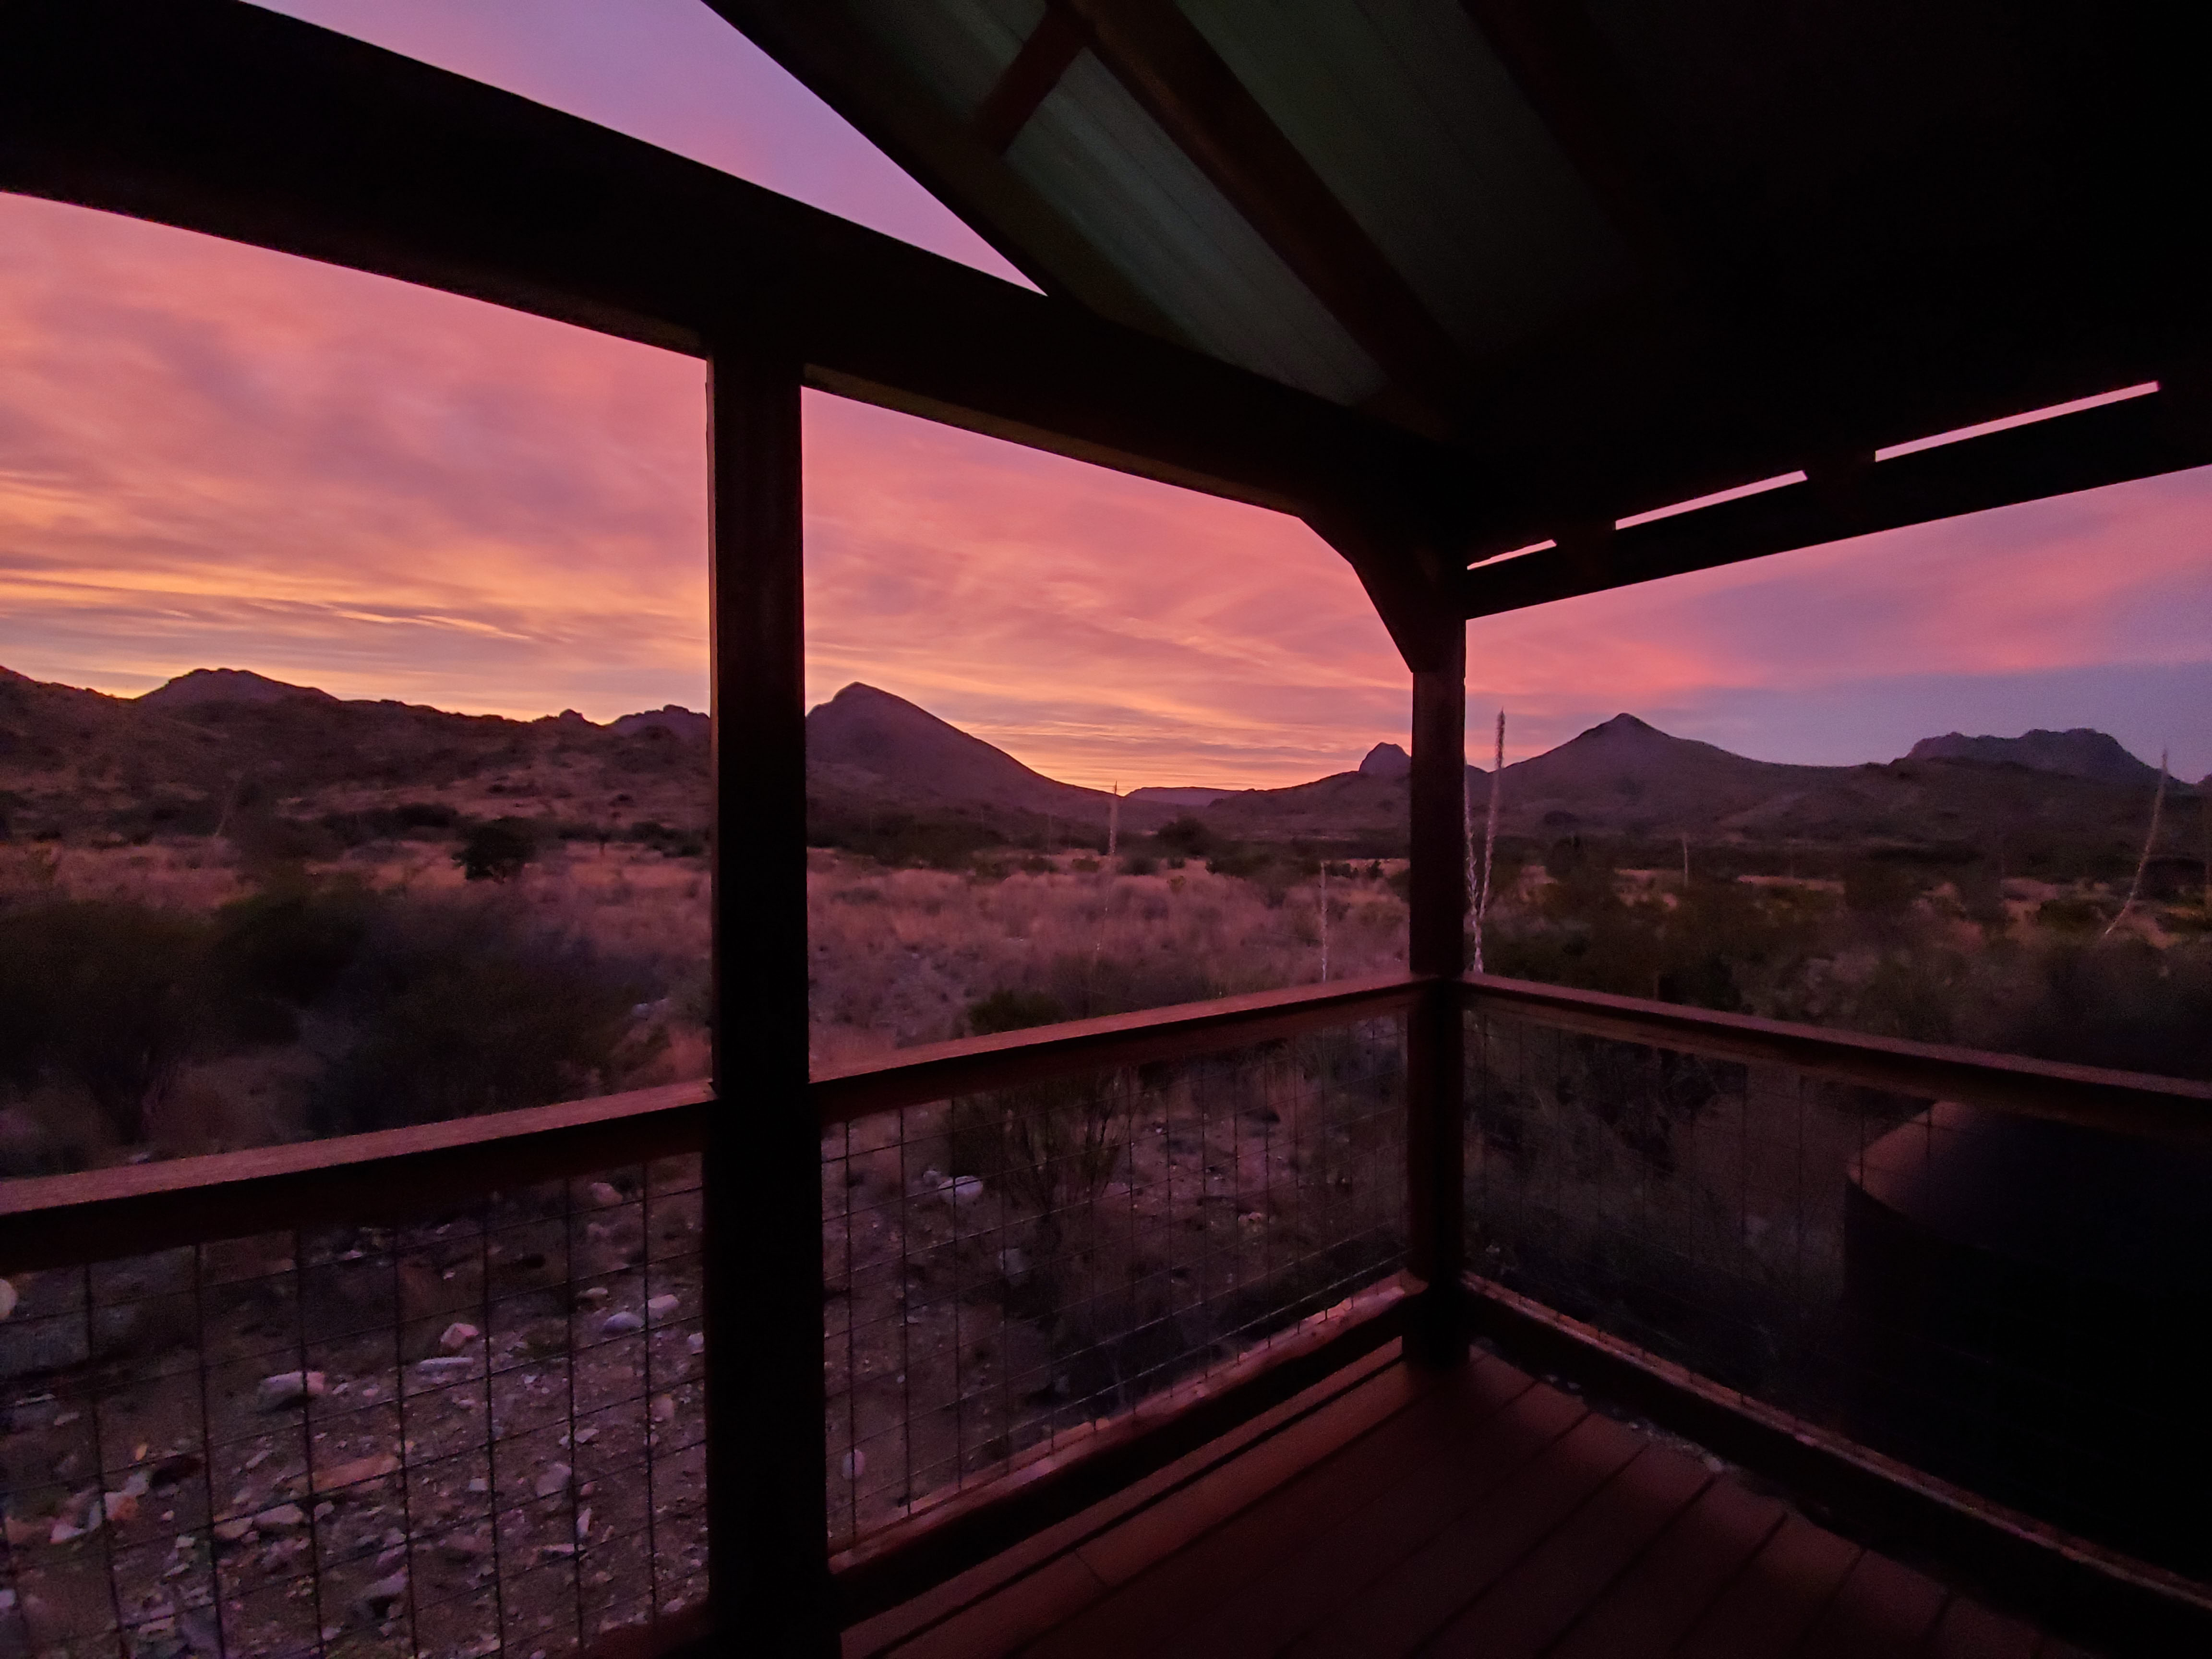 Sunset on the Porch